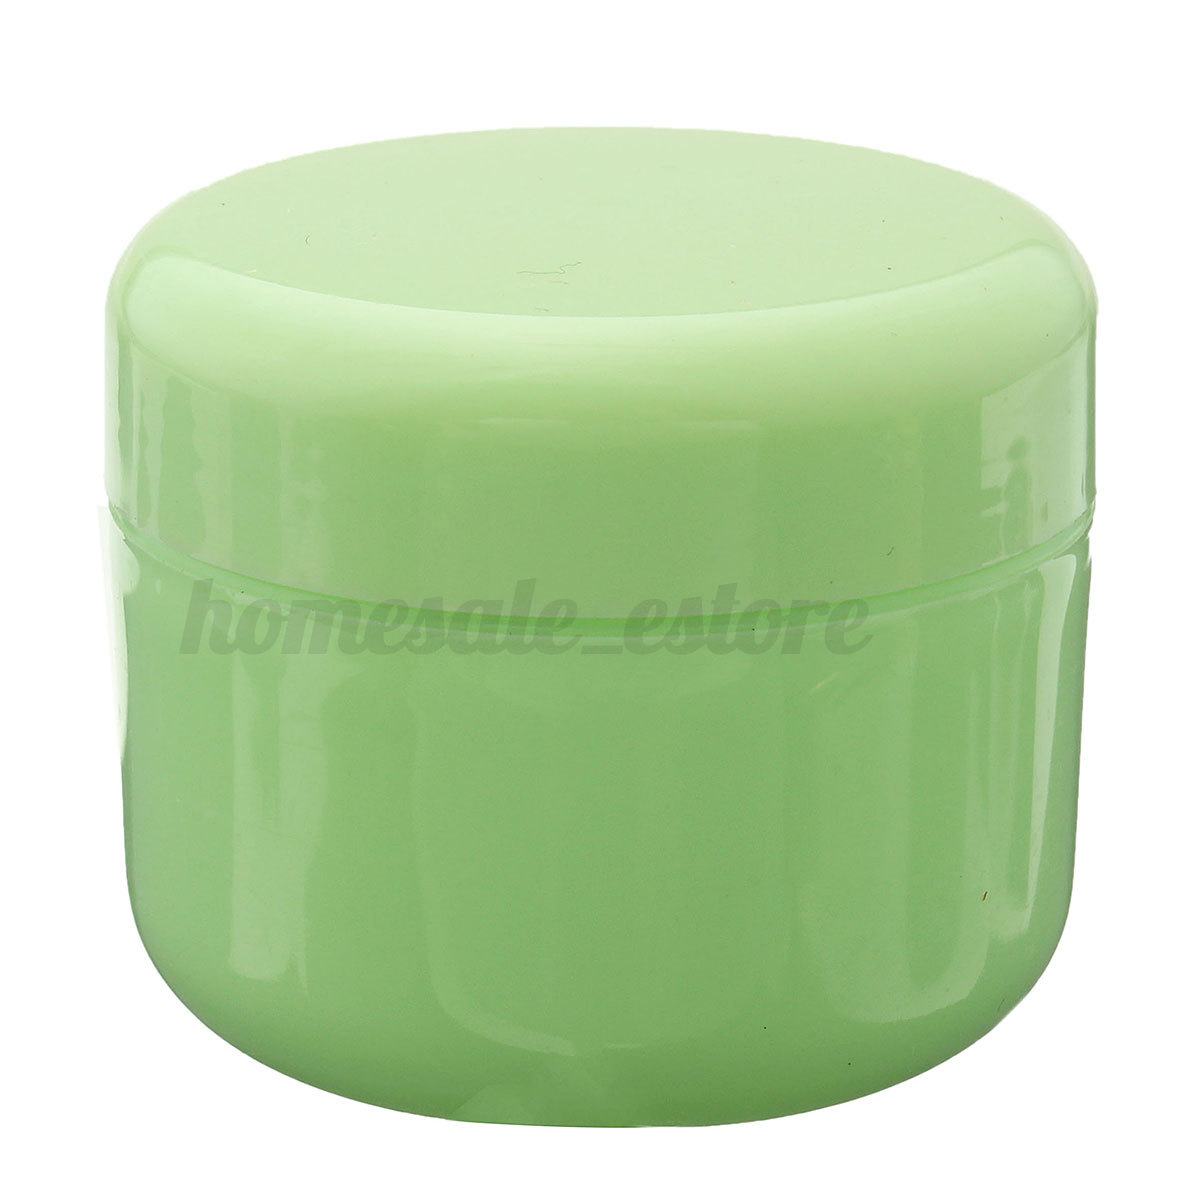 50g Empty Jar Pot Cosmetic Makeup Sample Cream Lotion Bottle Container Inner Lid